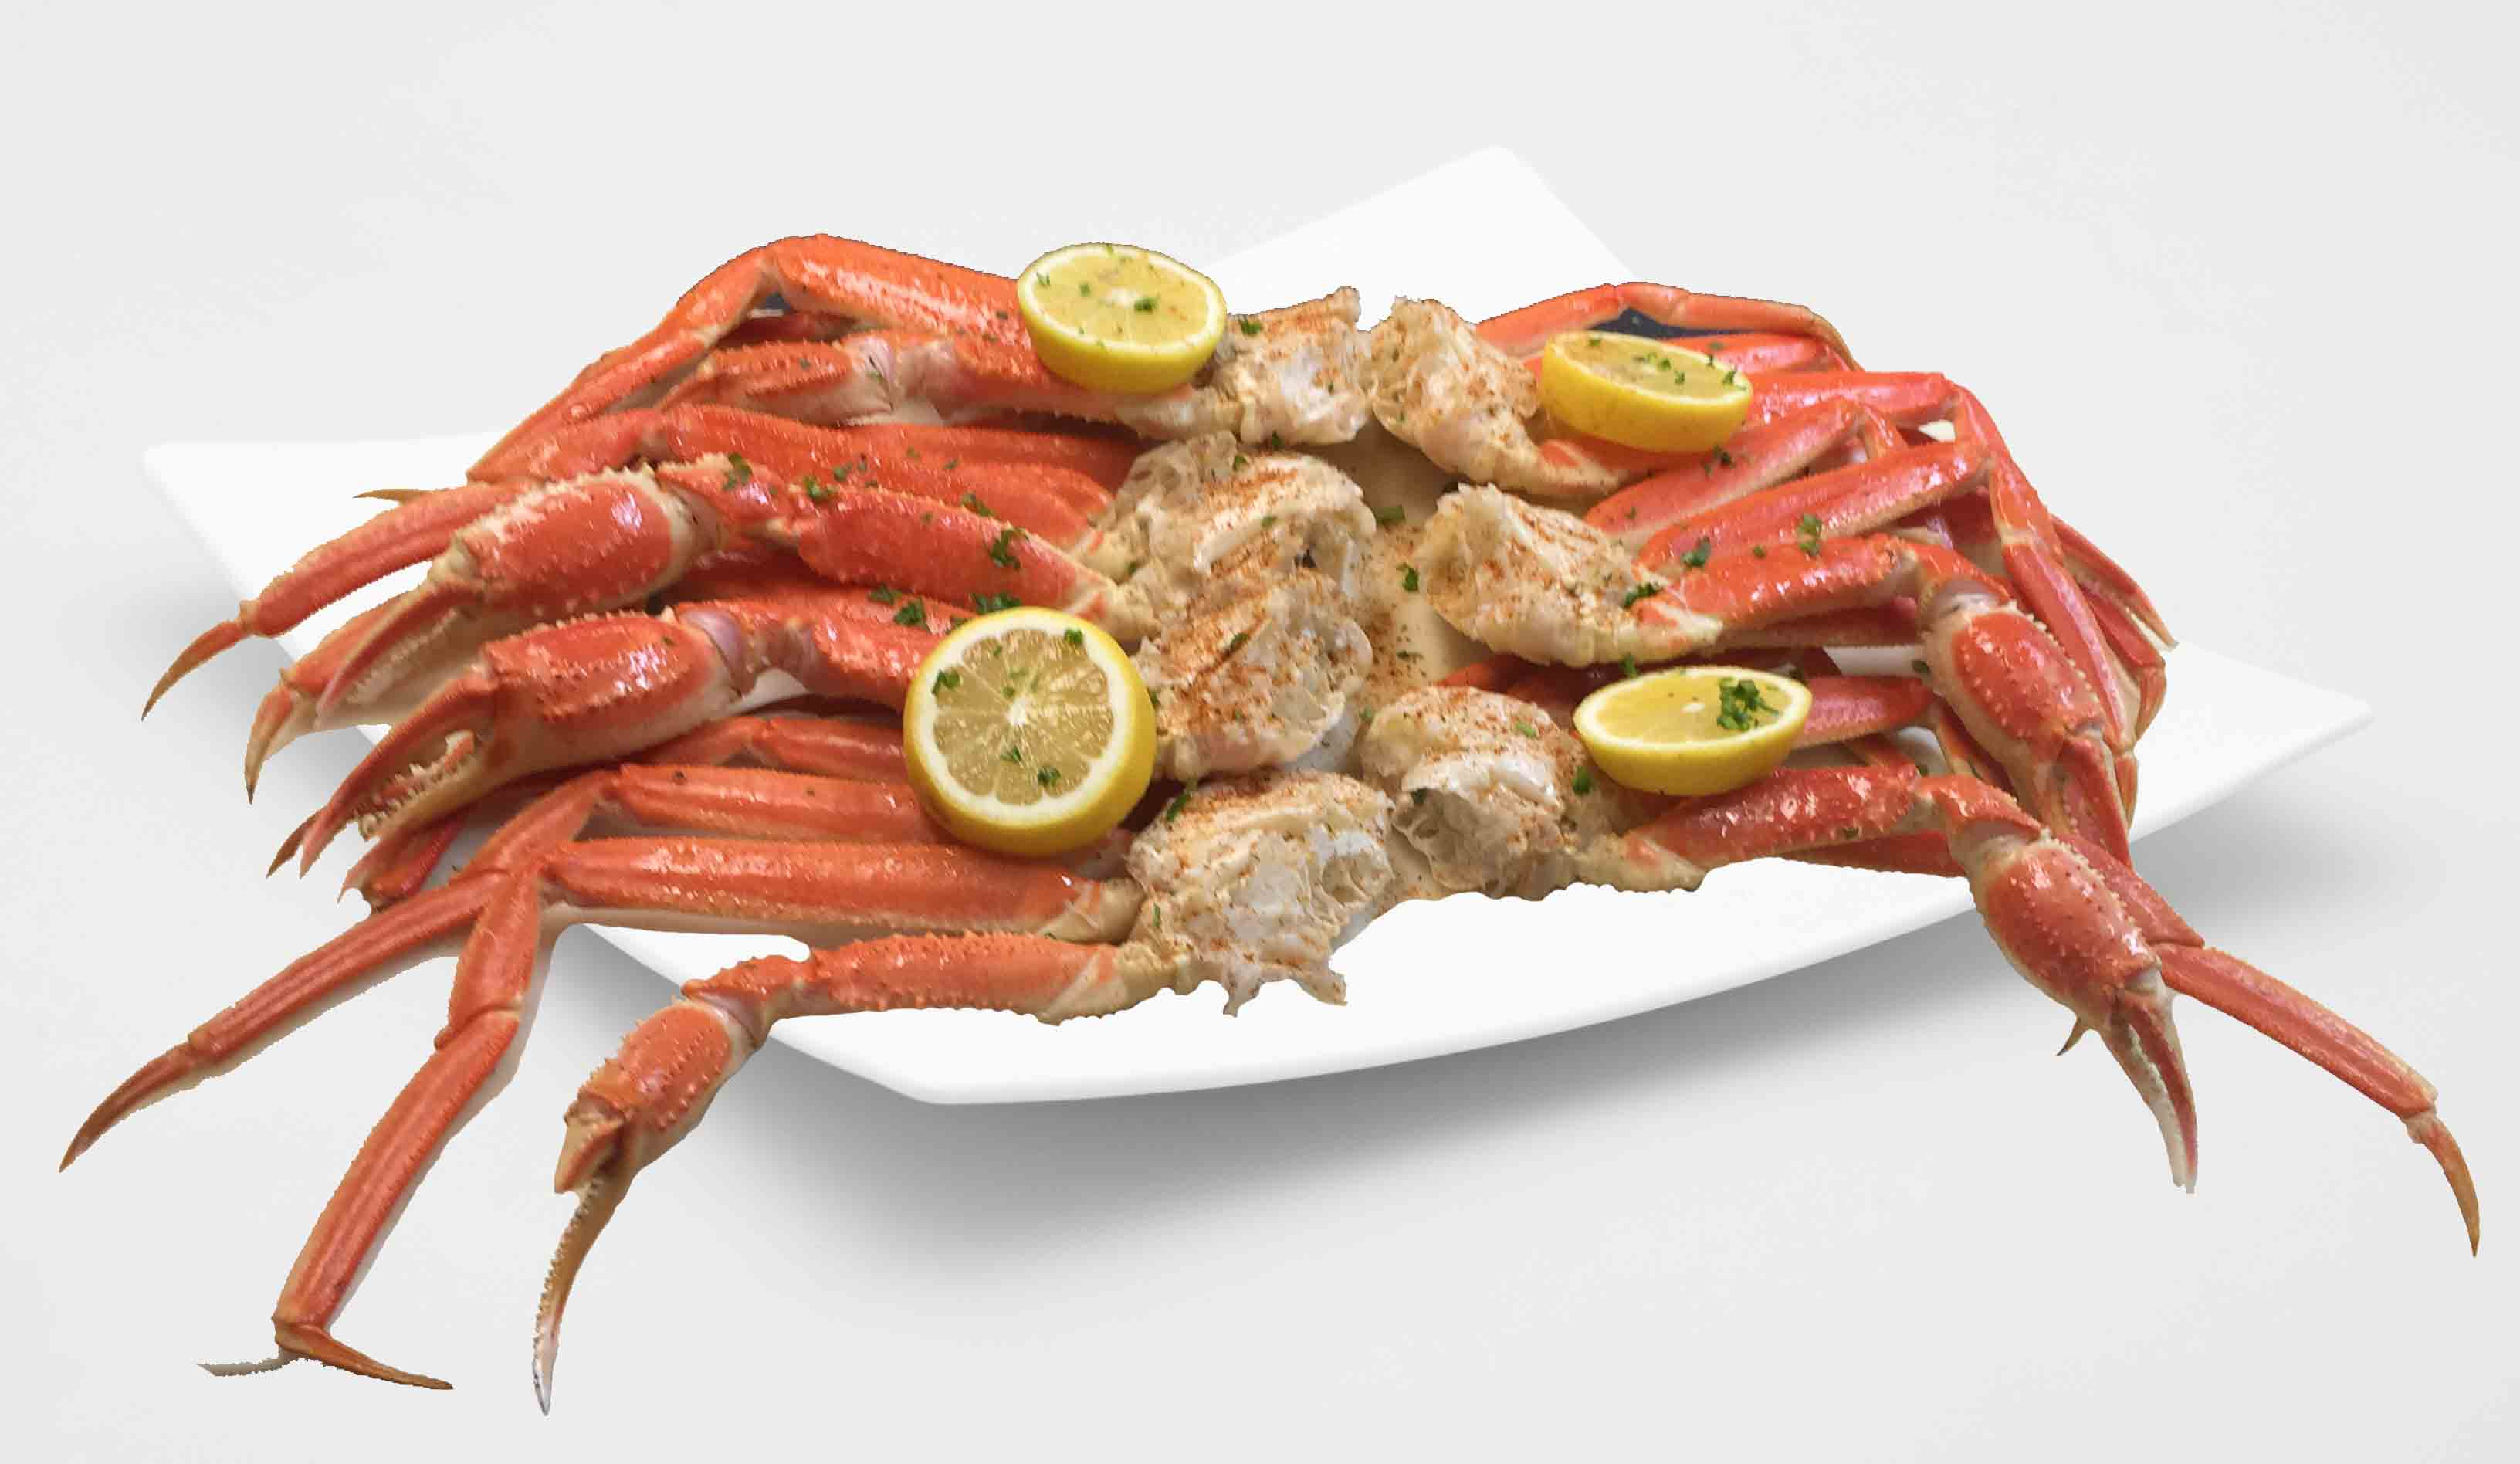 Calm All You Can Eat Crab Legs All You Can Eat Shrimp All You Can Eat Seafood nice food All You Can Eat